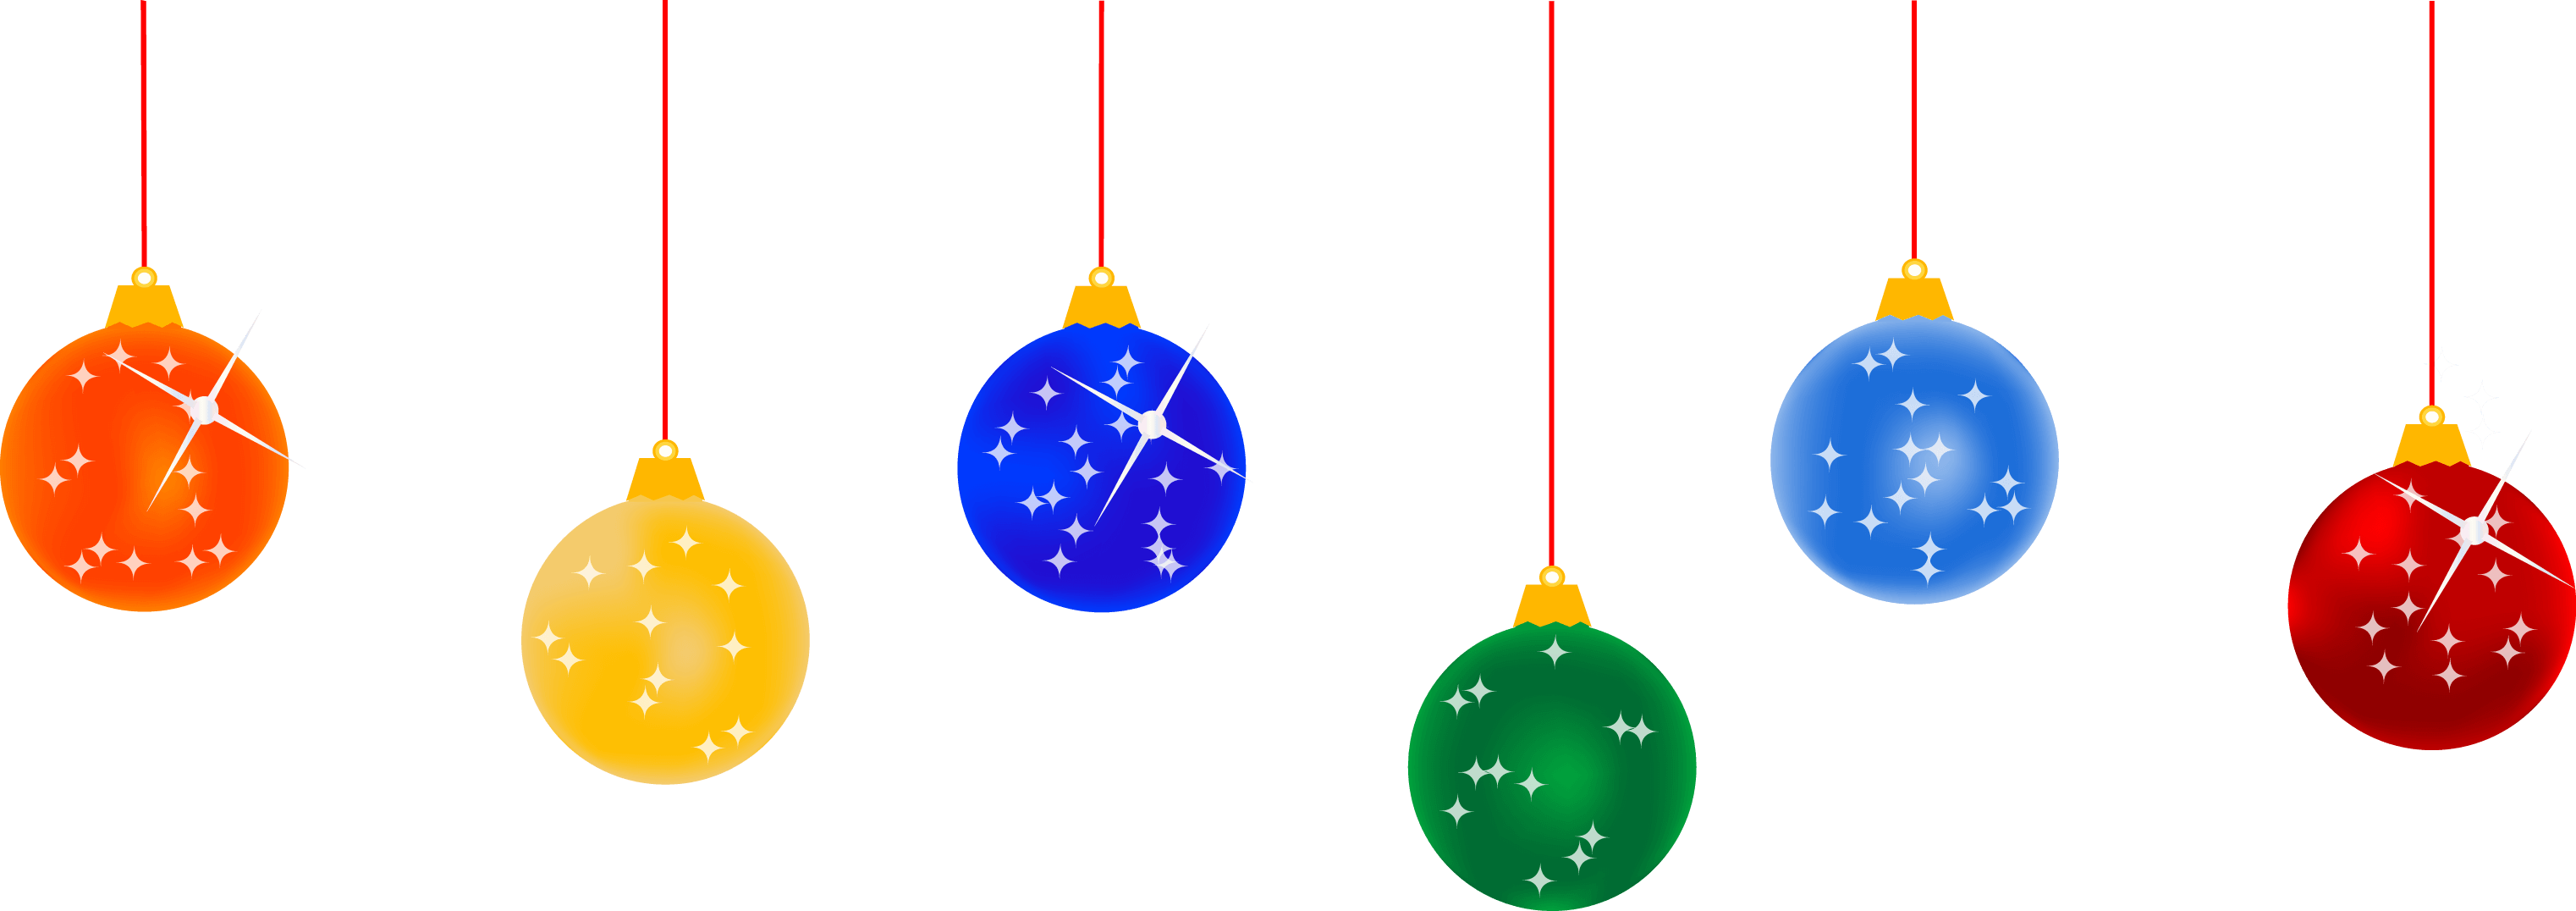 Christmas Lights Png Picture.